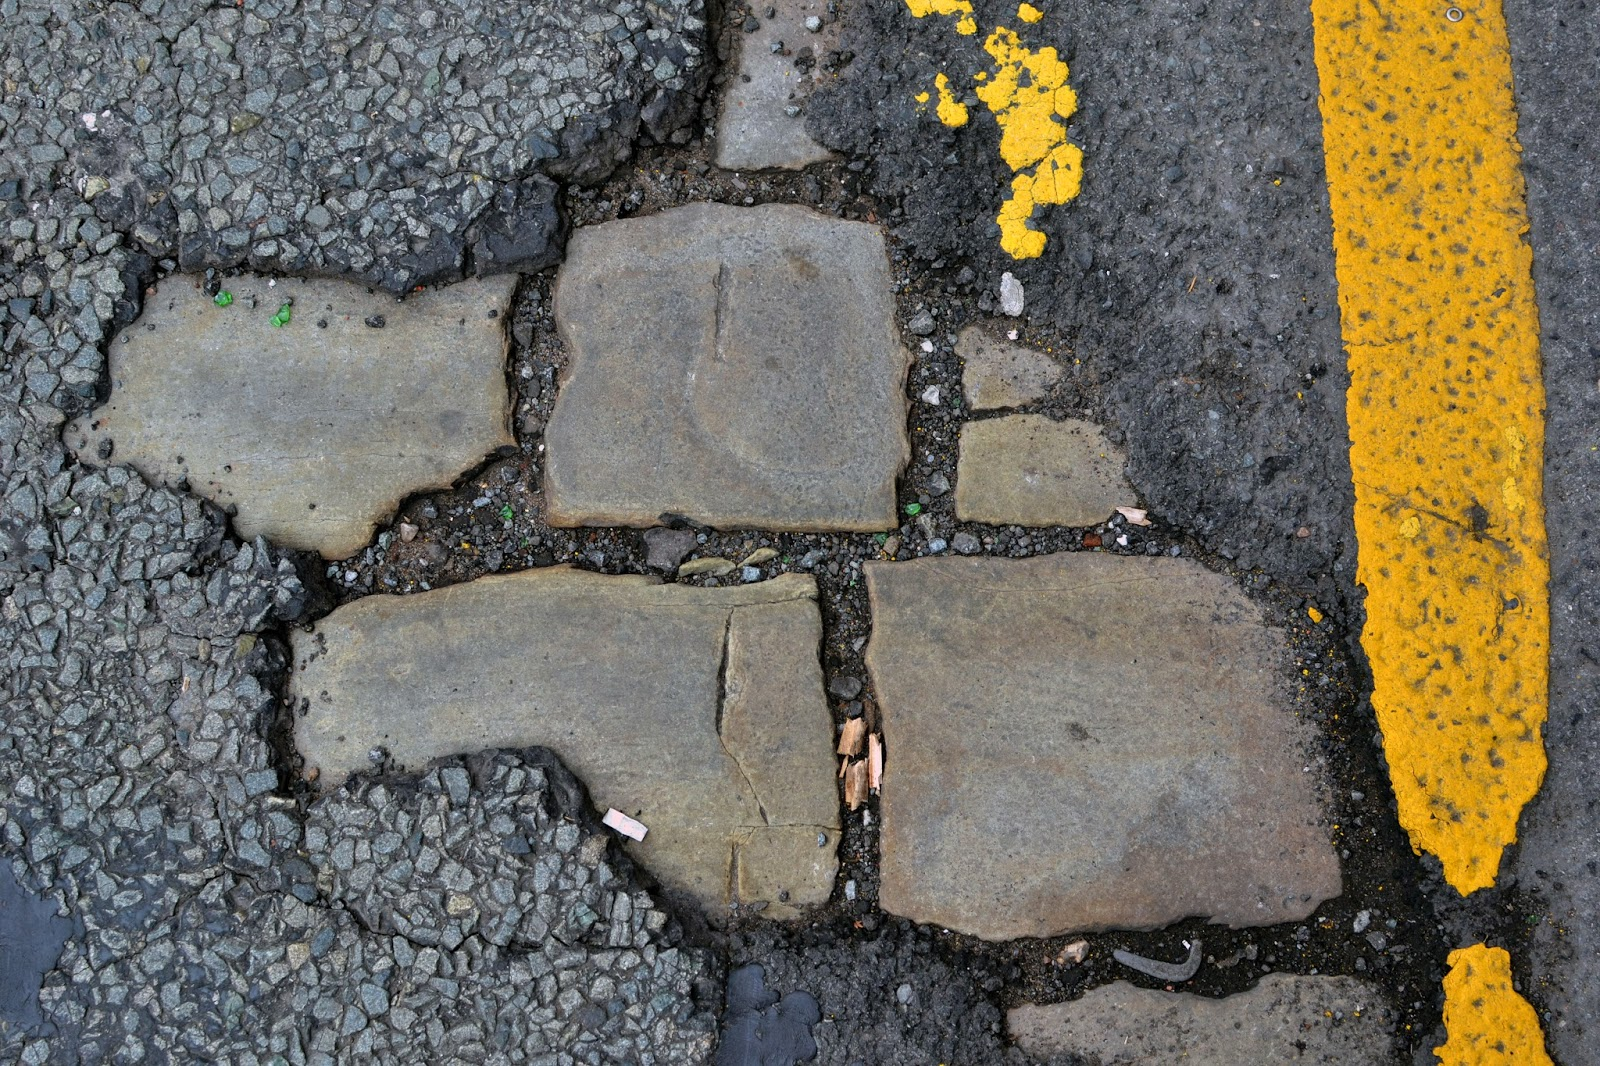 Cobbles, road markings, Details, exploring city, close up photography, manchester, urbex, ephemera, urban narrative